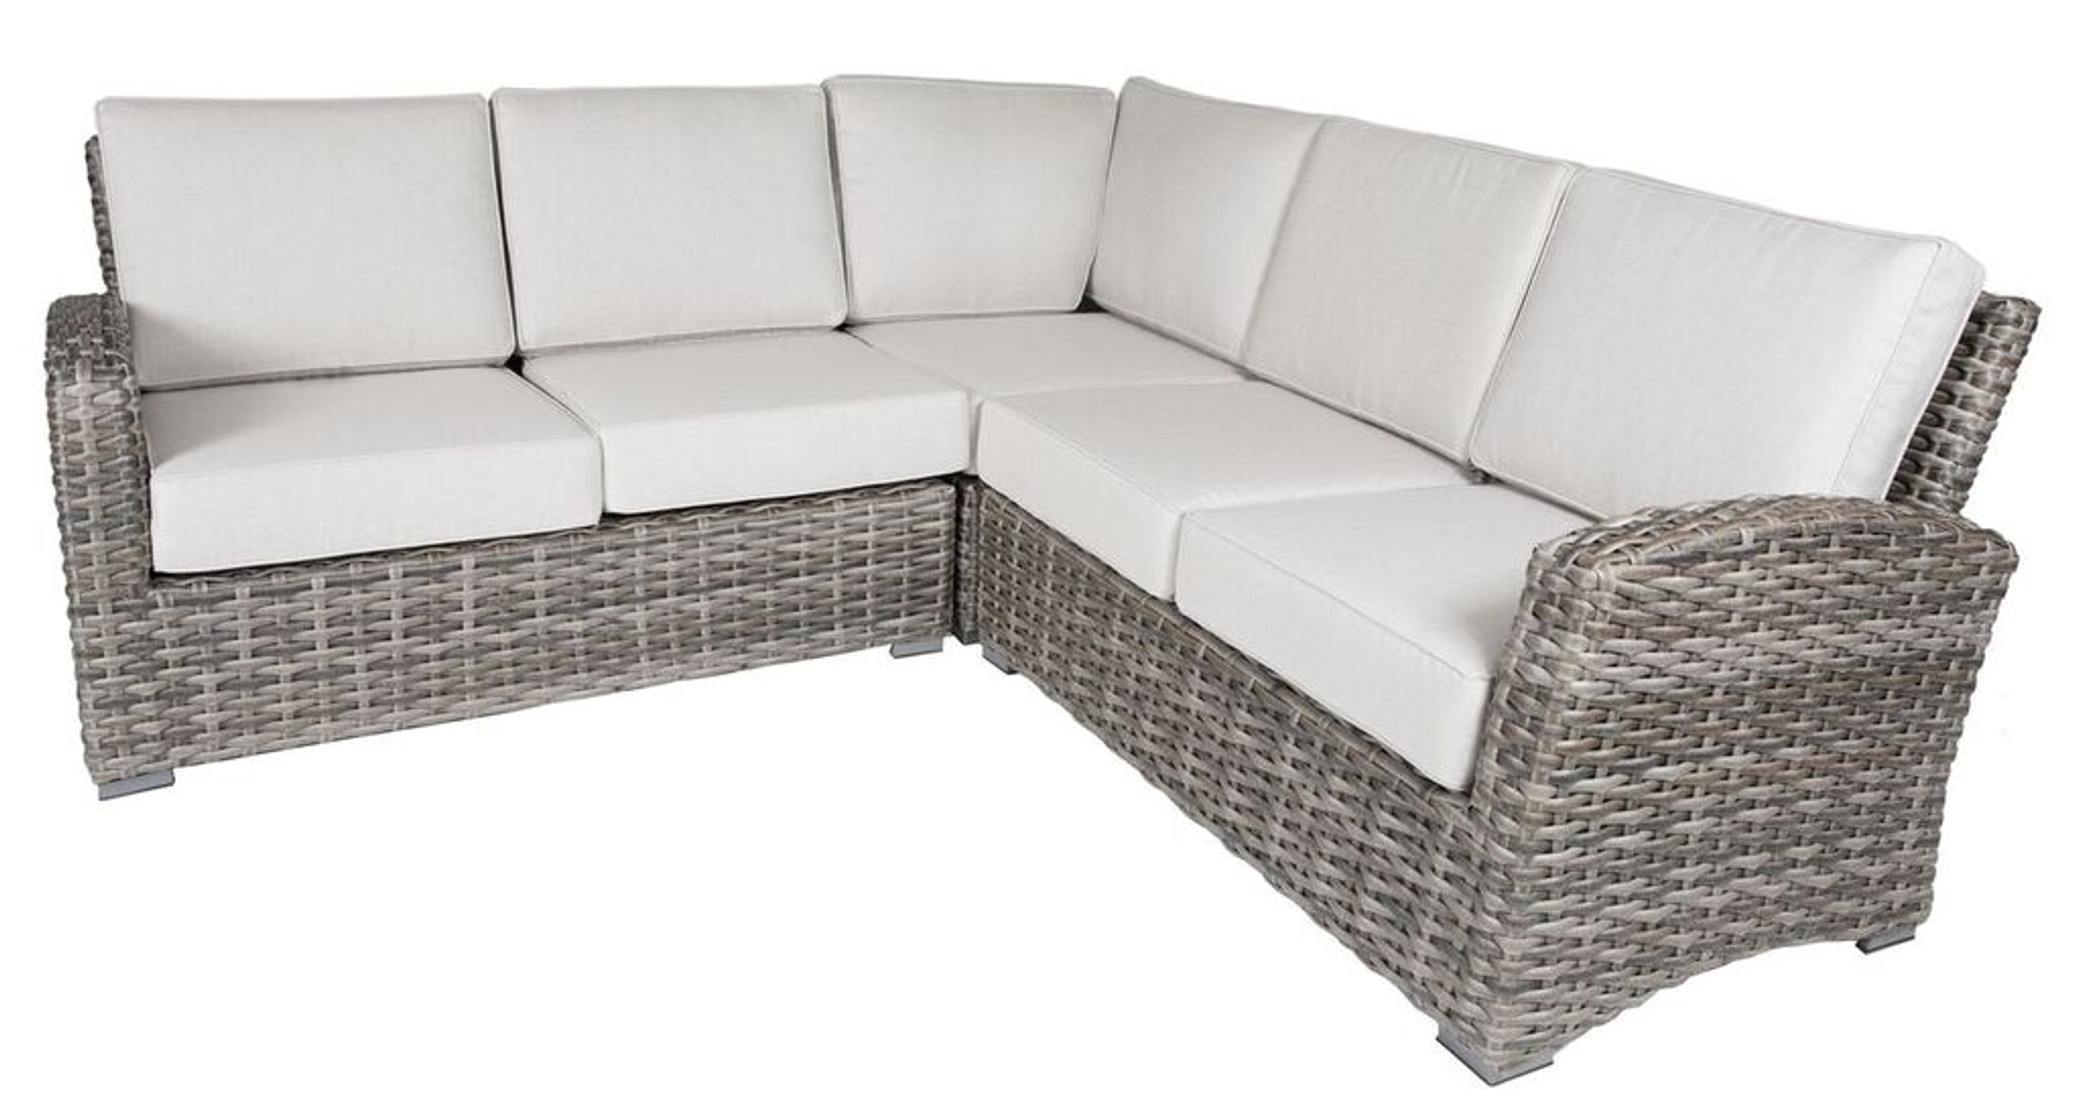 Catalina Outdoor Sectional Sofa w/Cushions